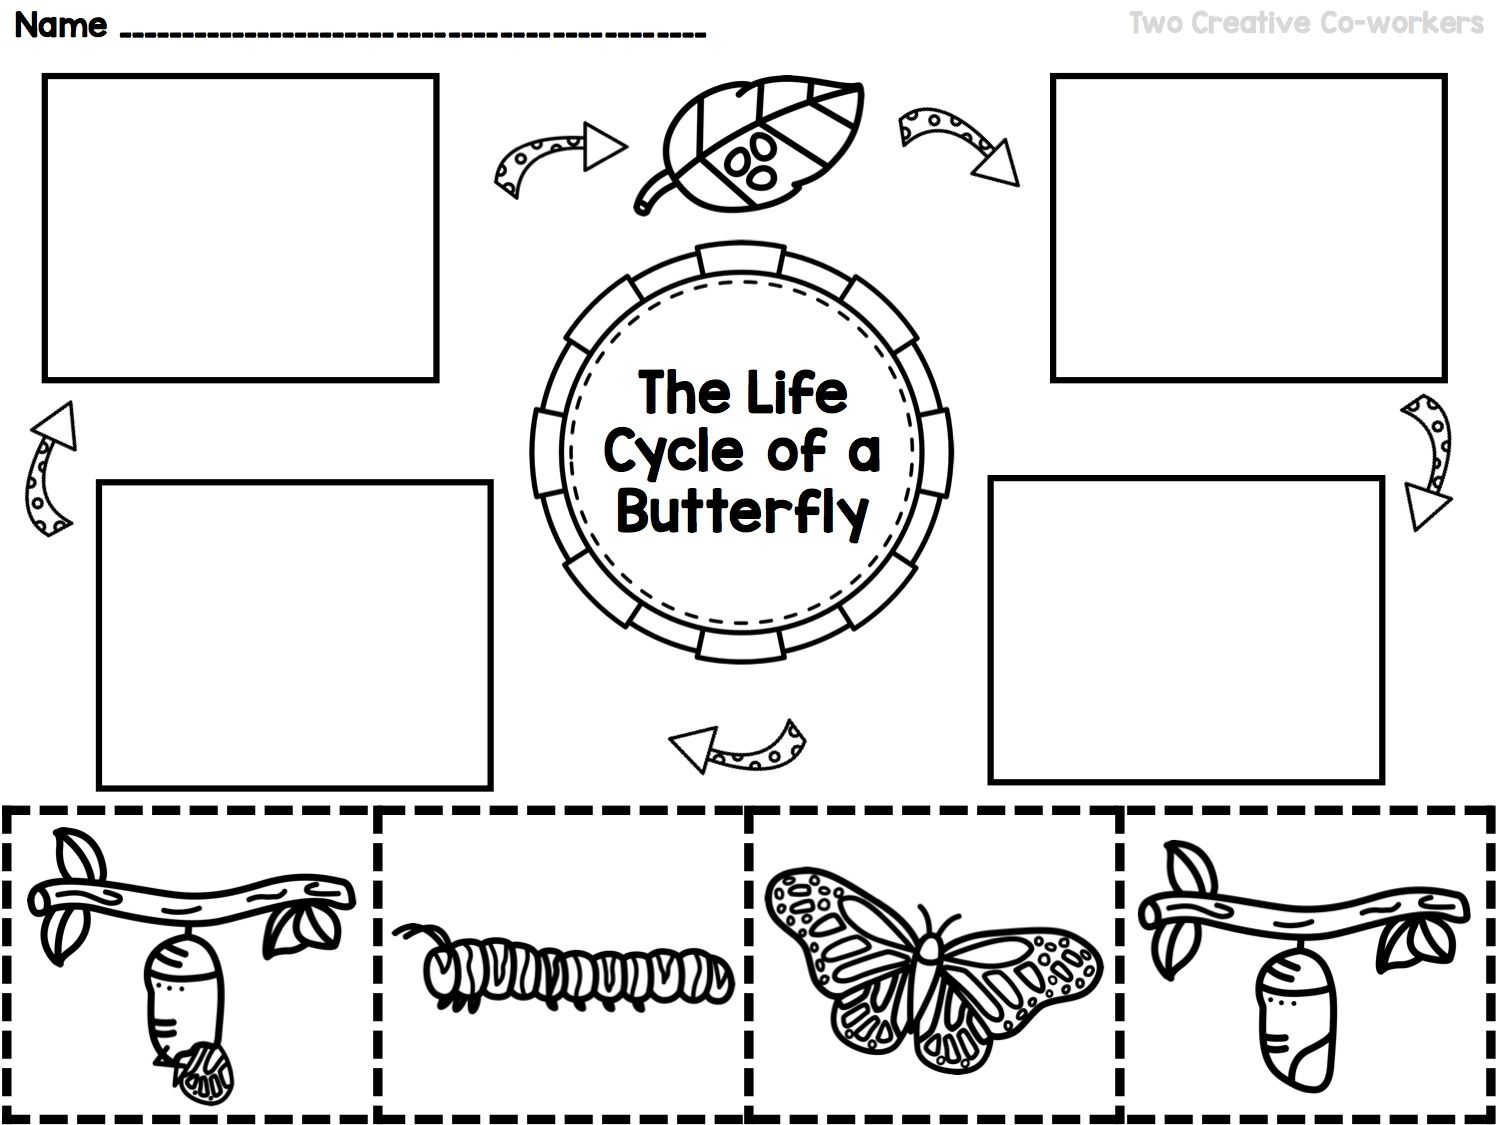 The life cycle of a butterfly printable mini book worksheets the life cycle of a butterfly printable mini book worksheets cards robcynllc Choice Image